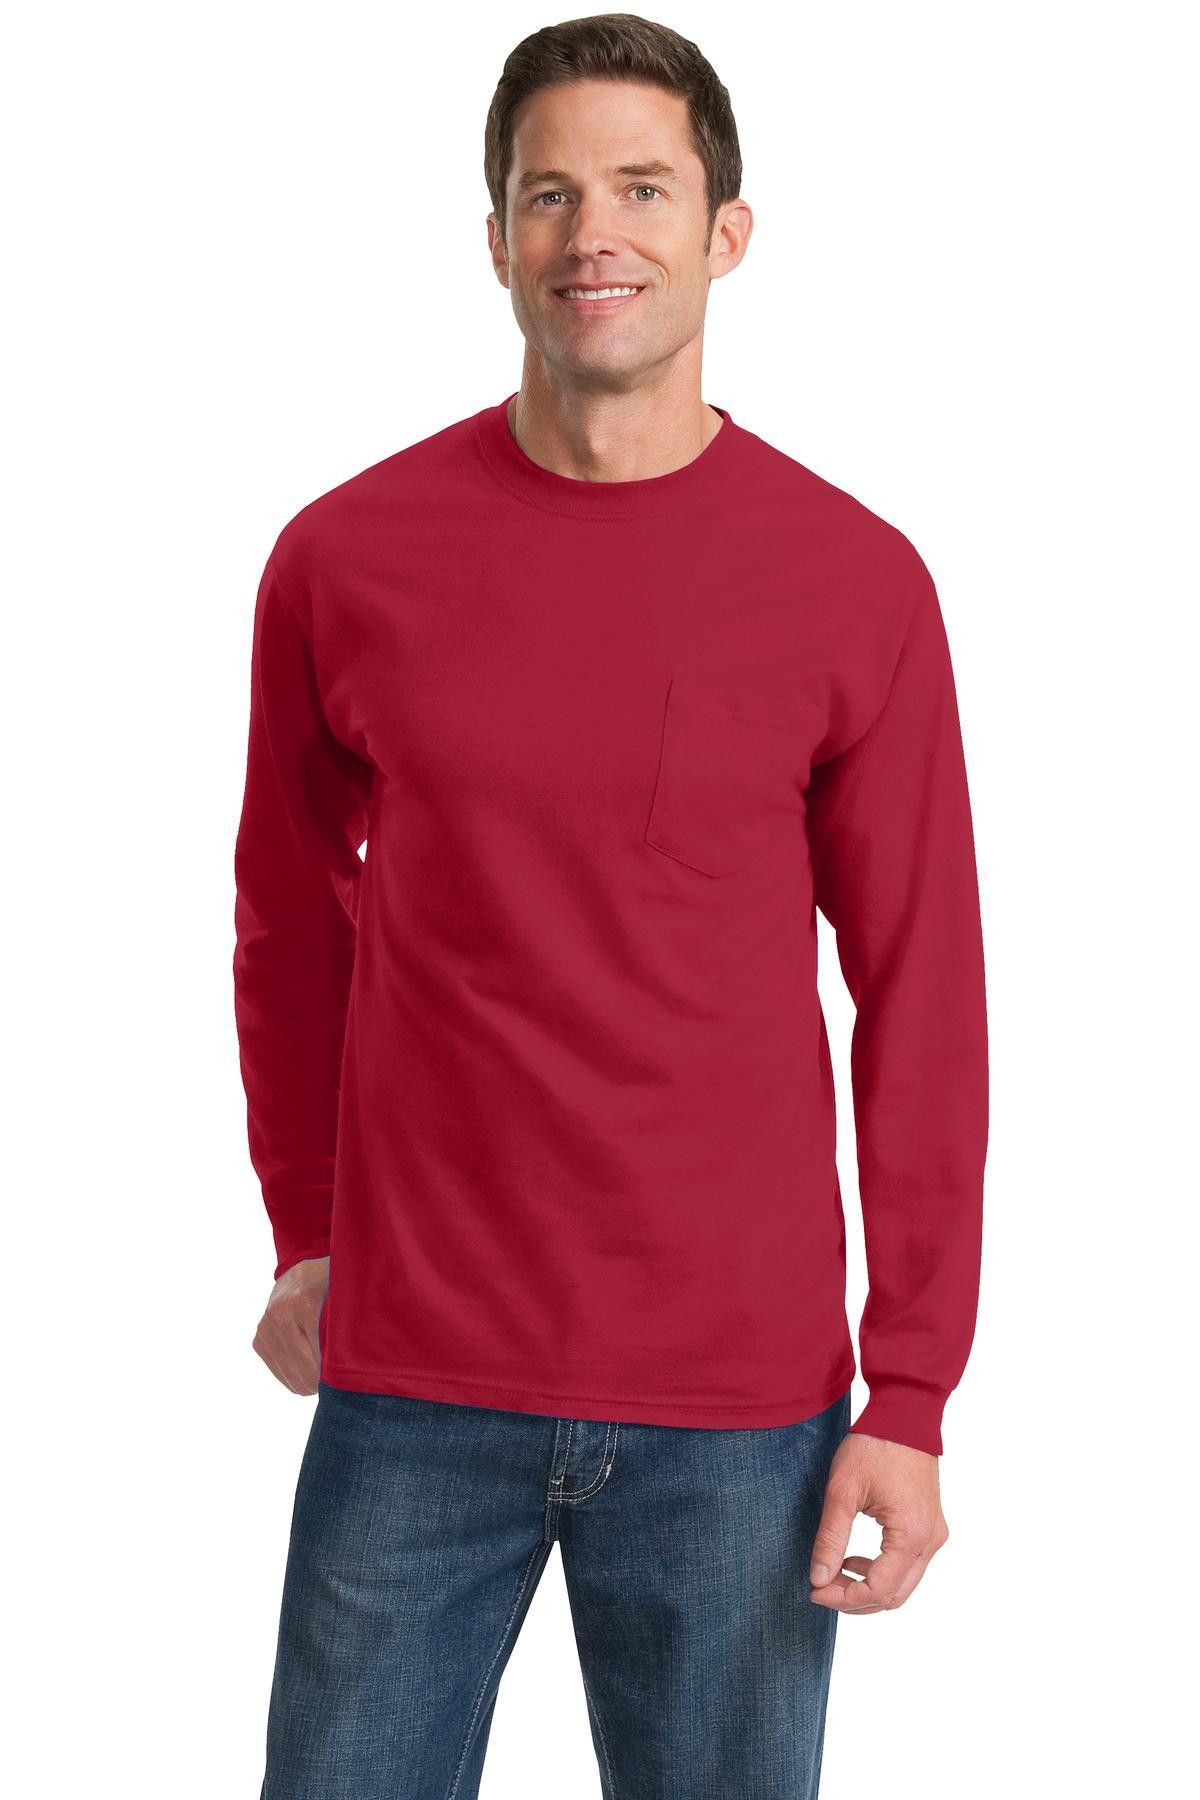 Port & Company Tall Long Sleeve Essential T-Shirt with Pocket PC61LSPT Red